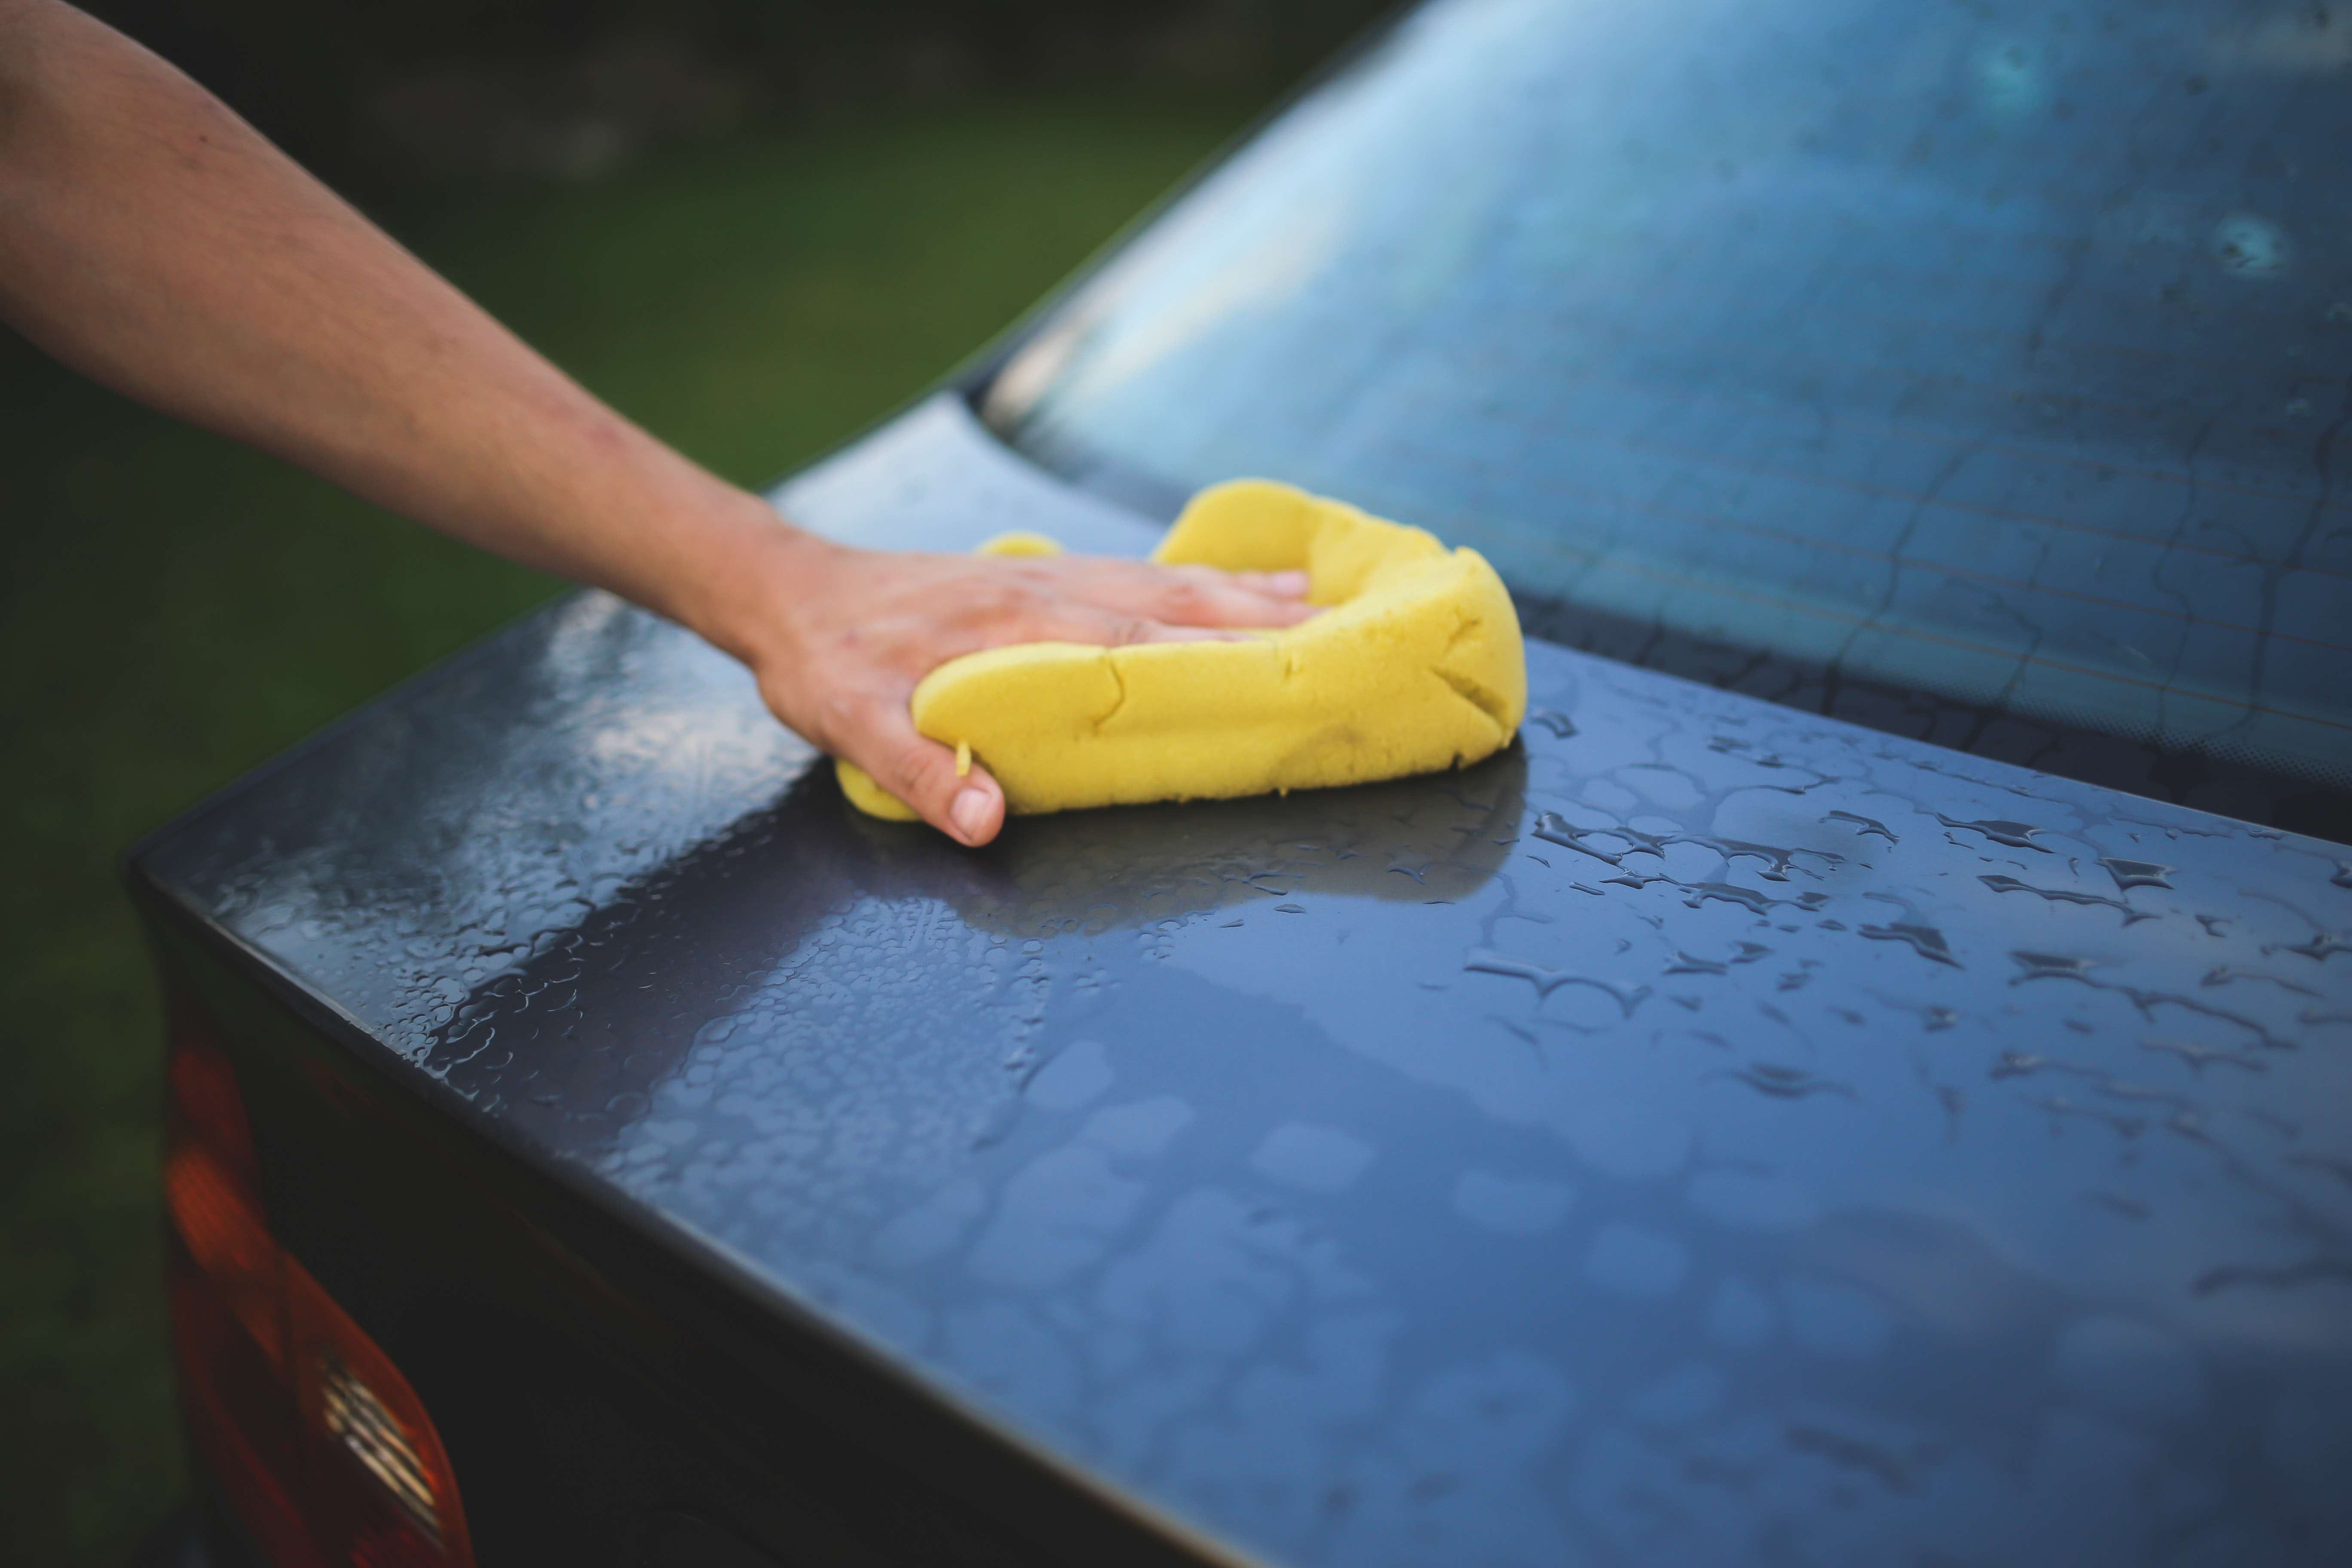 Spring Cleaning? Don't forget about your vehicle!